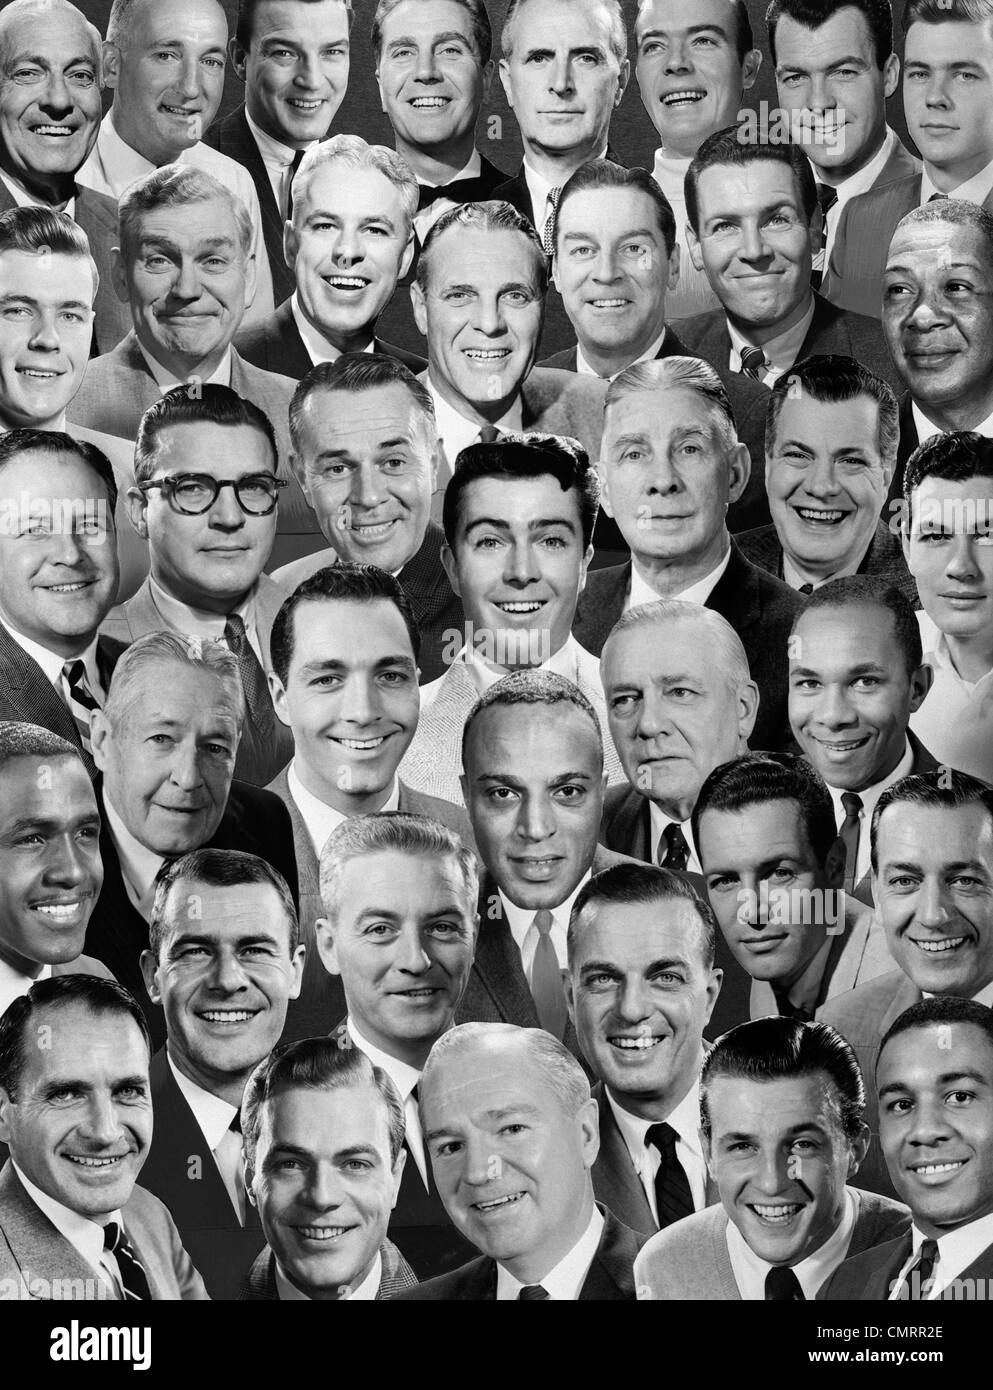 1960s 1970s MONTAGE OF MEN'S PORTRAITS ALL SMILING FACES - Stock Image